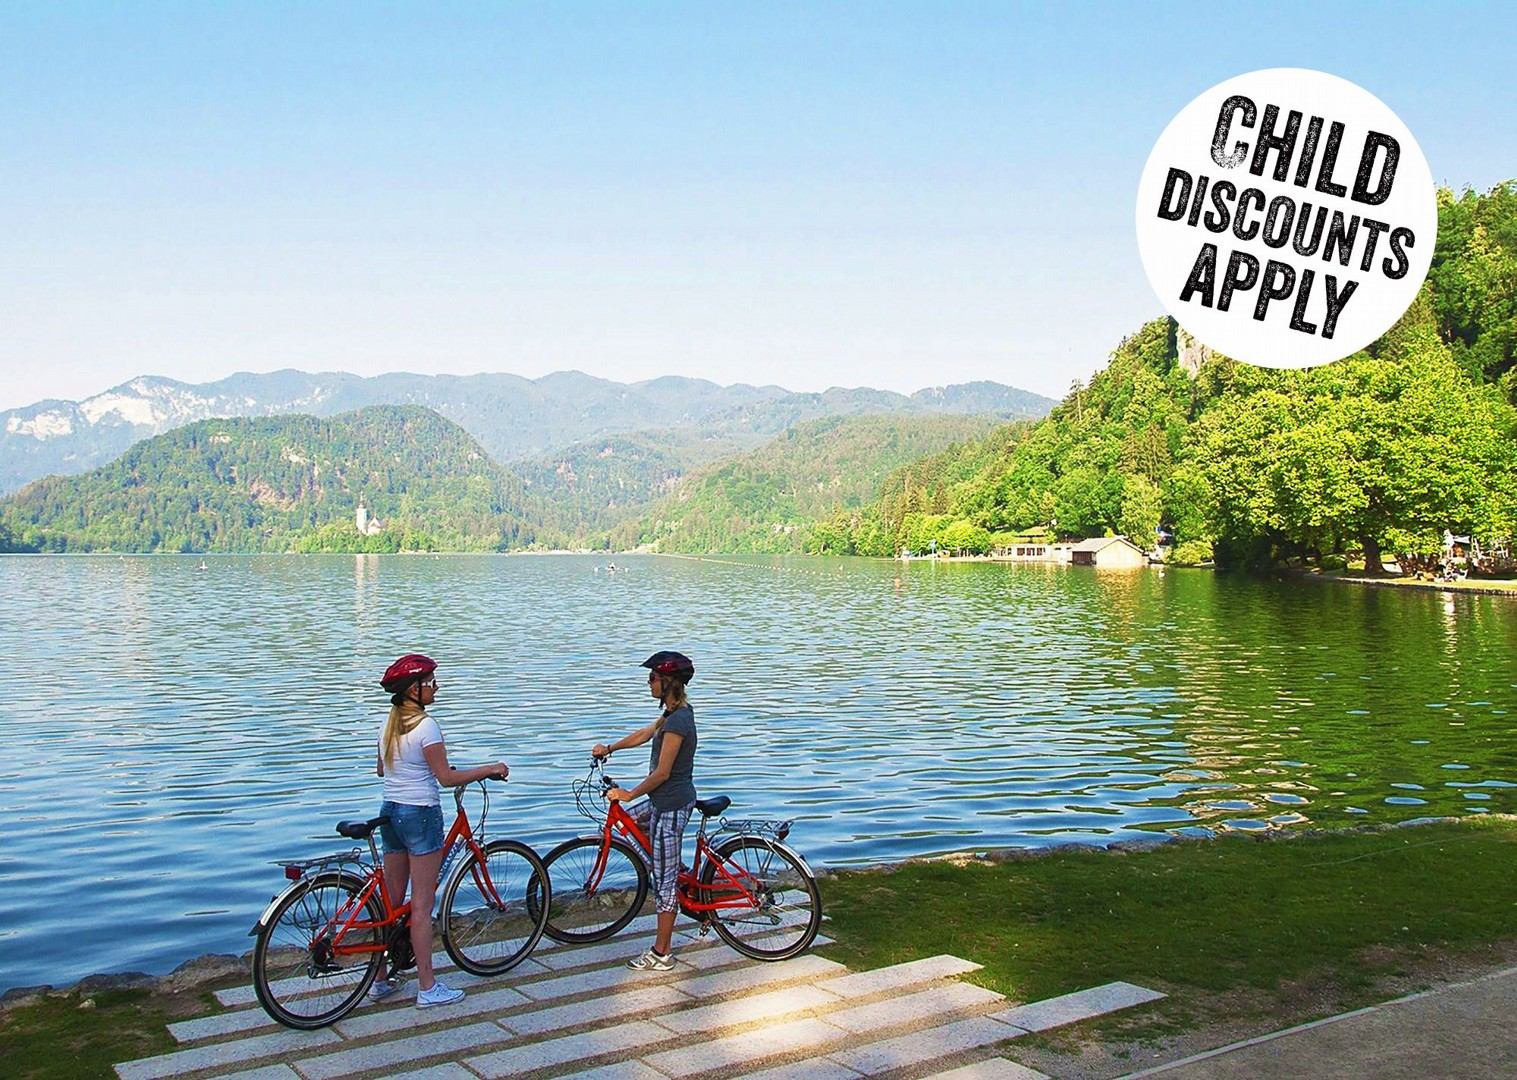 led-castle-self-guided-family-cycling-holiday-slovenia-magical-lake-bled.jpg - Slovenia - Magical Lake Bled - Self-Guided Family Cycling Holiday - Family Cycling